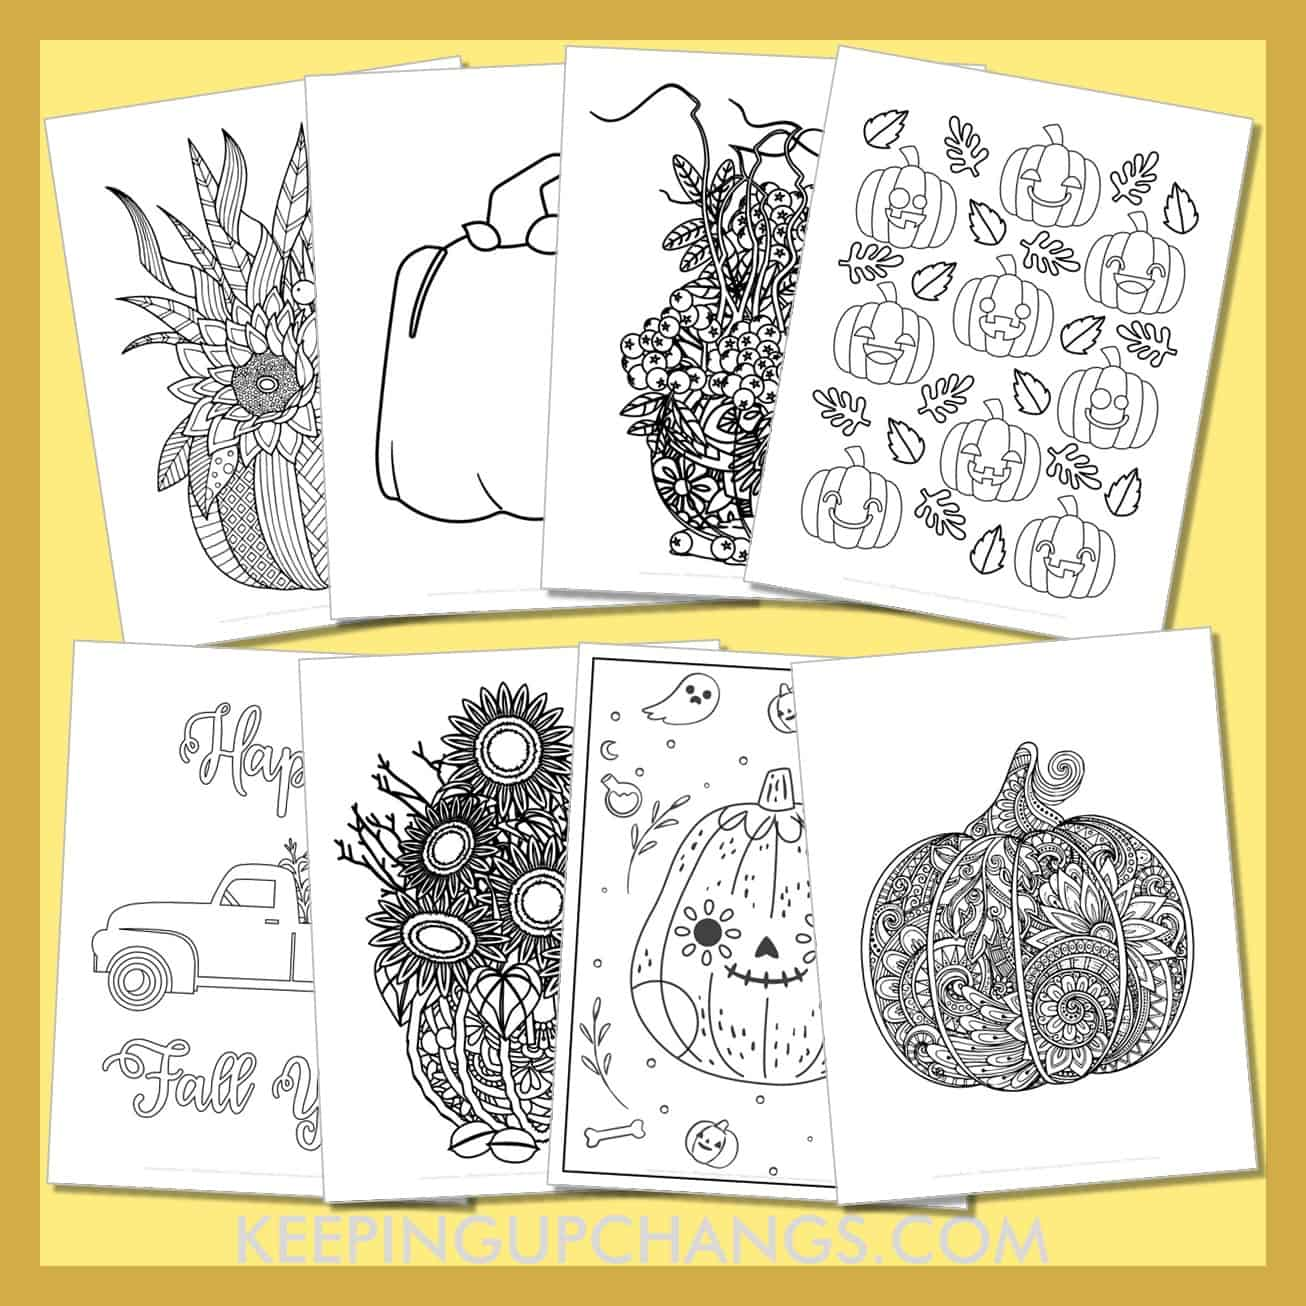 pumpkin colouring sheets including cute designs for fall, halloween, thanksgiving.